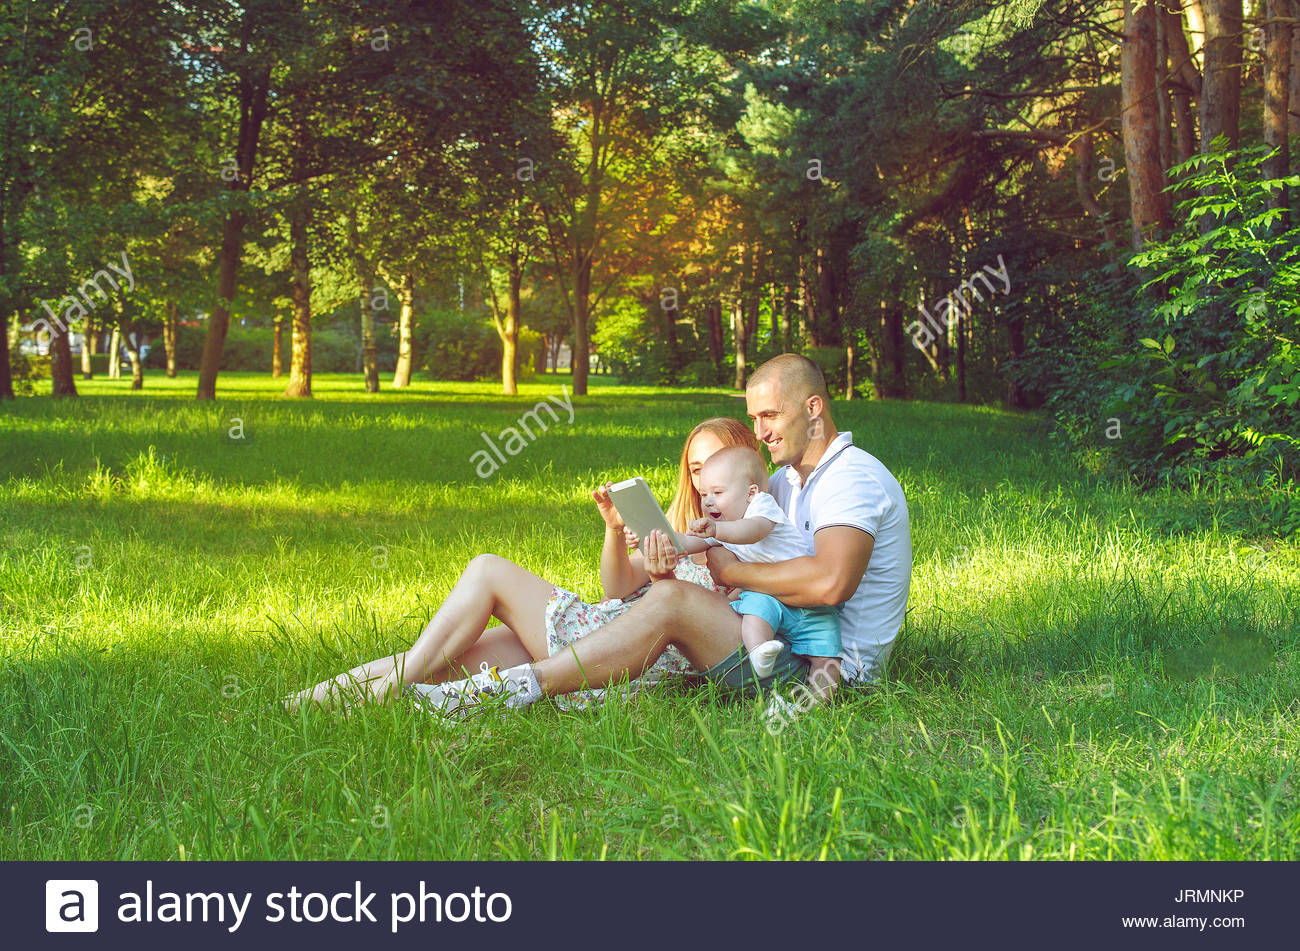 Family spending time with a tablet on nature in summer - Stock Image